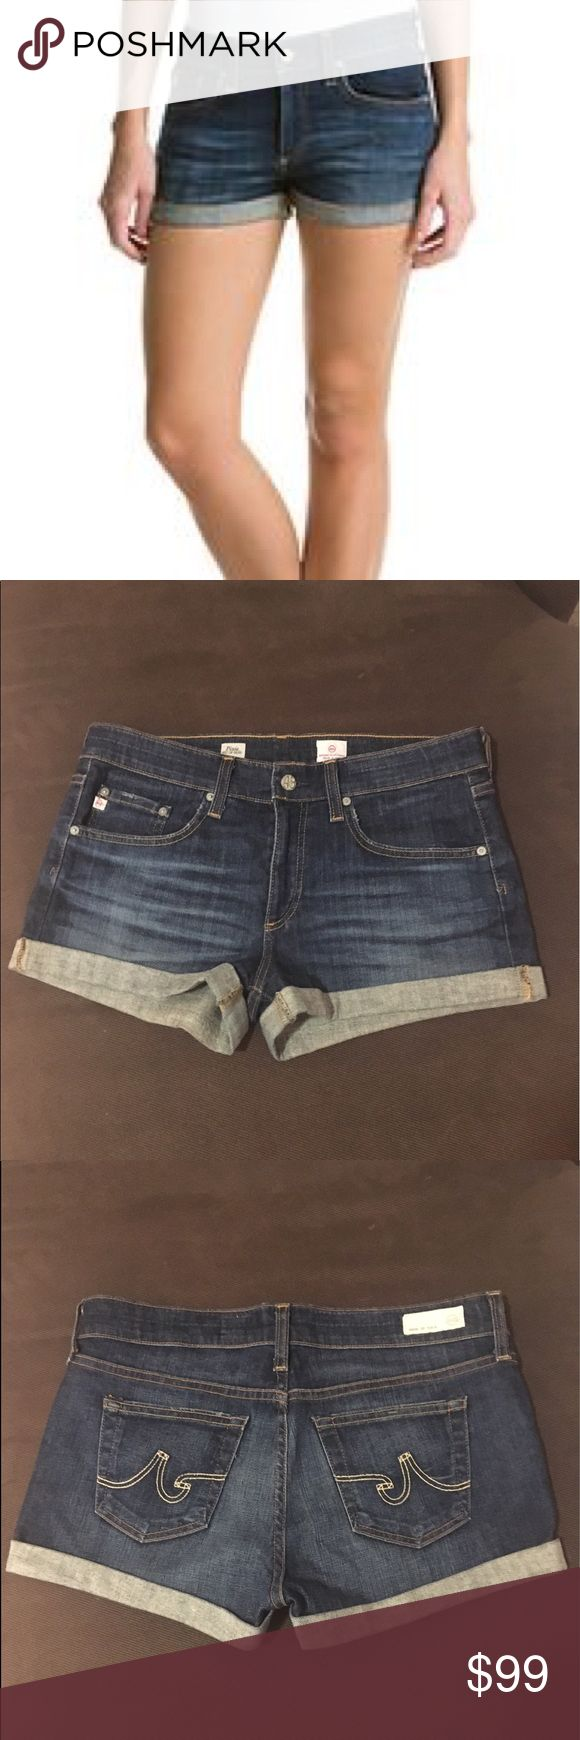 AG Adriano Goldscmied Pixie Roll Up Denim Short Super cute cuffed denim shorts with 5 pocket styling and single button closure. Worn maybe 5 times. Hazy whiskering and fading for the look of the perfect weathered pair. Always air dried. Pet and smoke free home. Ag Adriano Goldschmied Shorts Jean Shorts